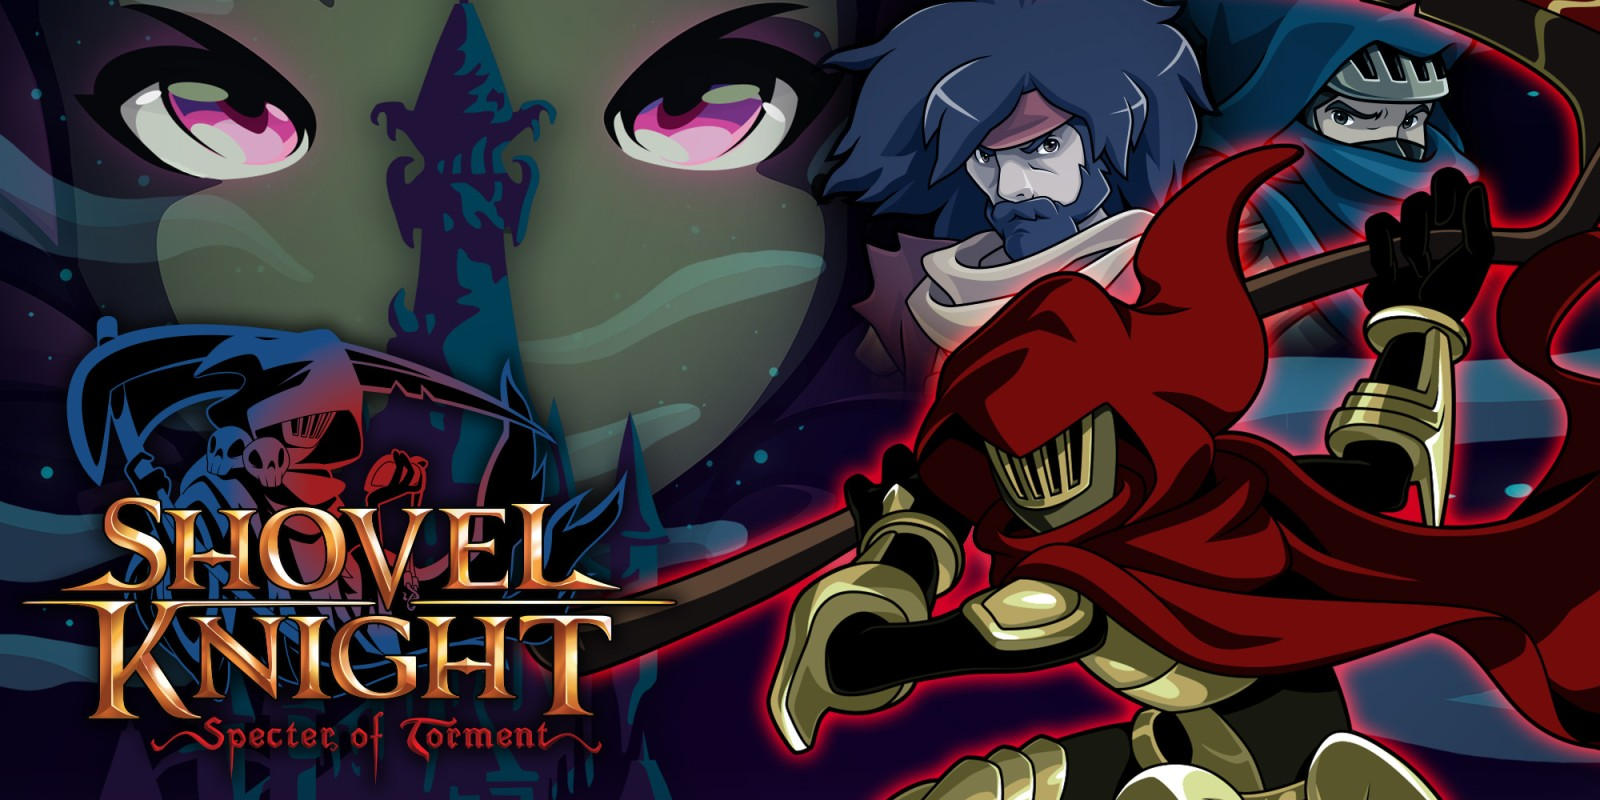 Switch eShop deals from $1: Shovel Knight, My Friend Pedro, Dead Cells, more